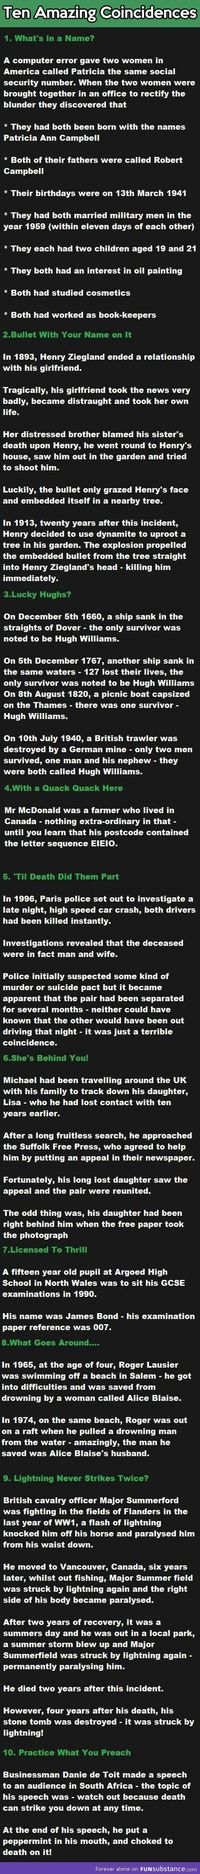 10 Amazing Coincidences.